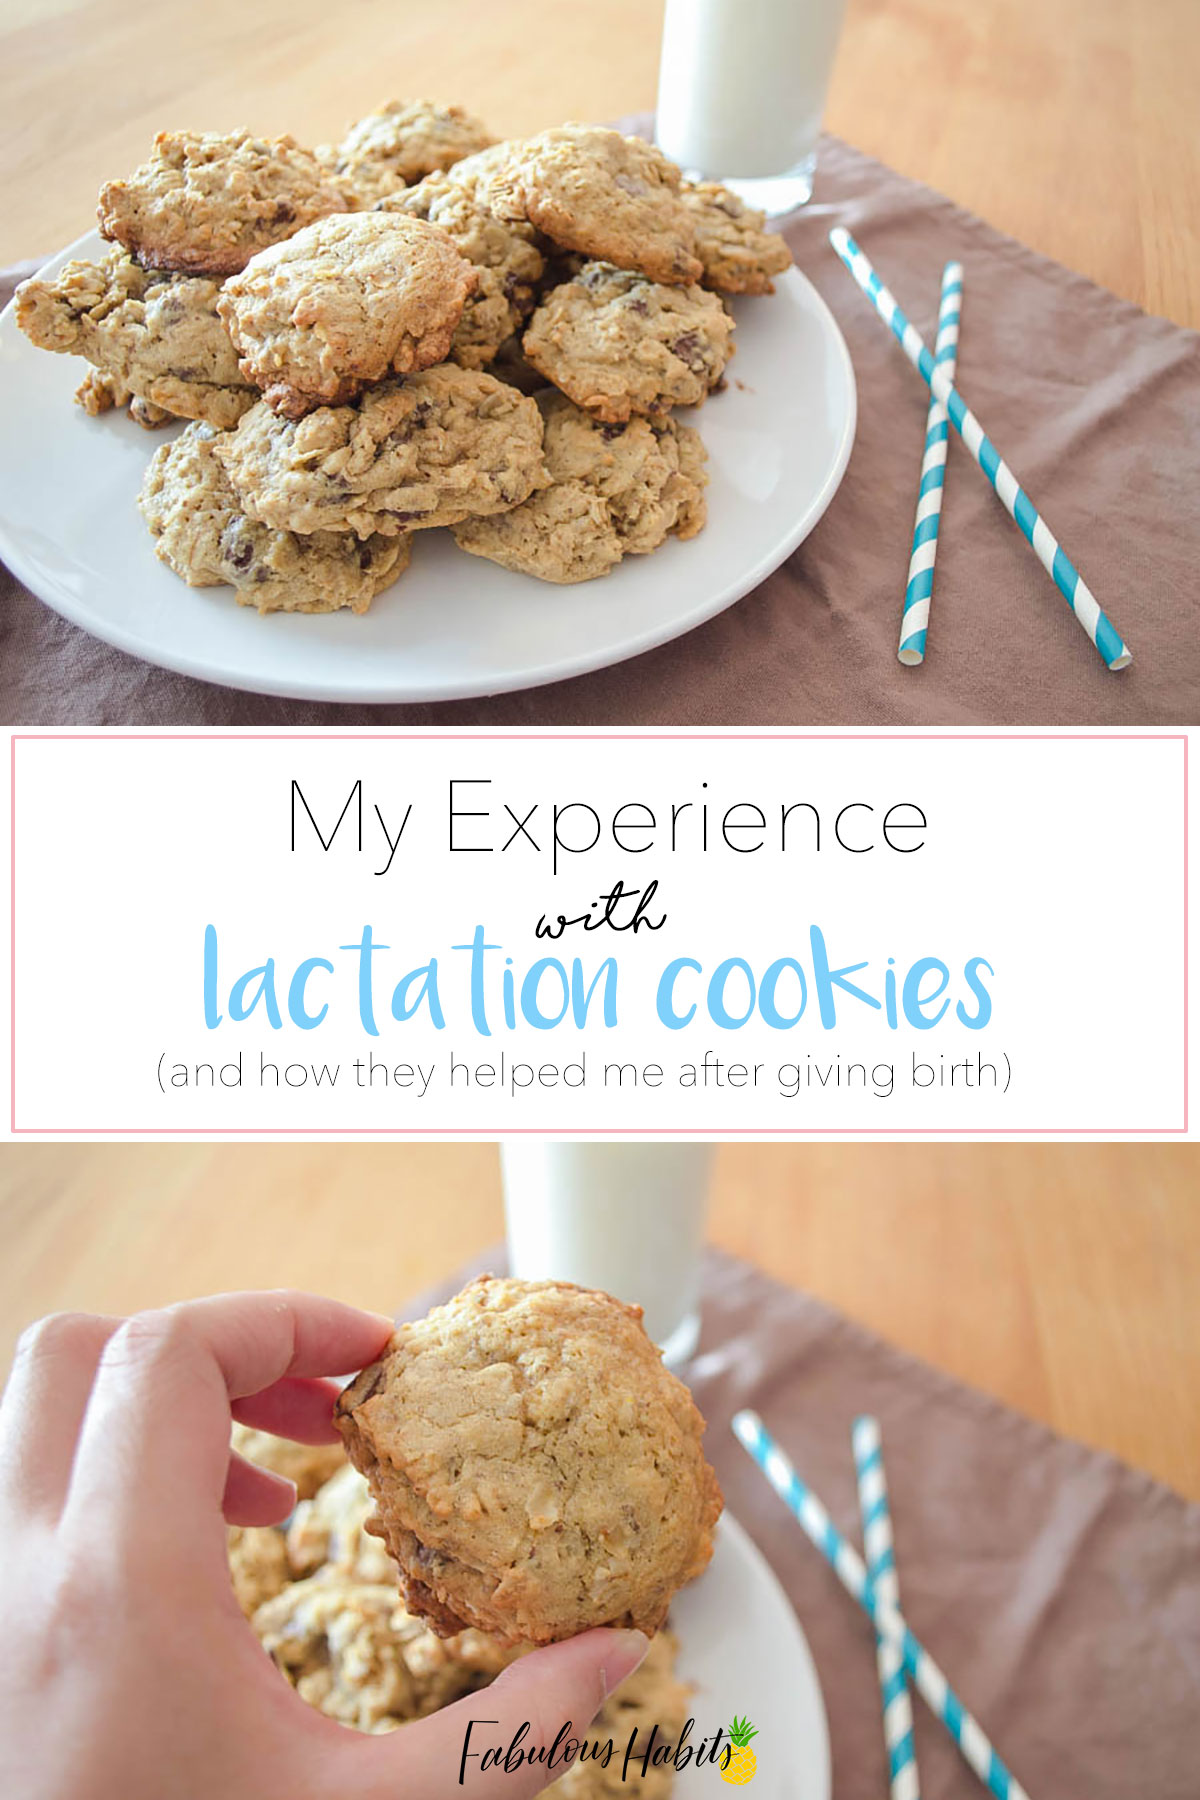 Here is a review on how lactation cookies helped boost my milk supply in the early months of being a new mom!